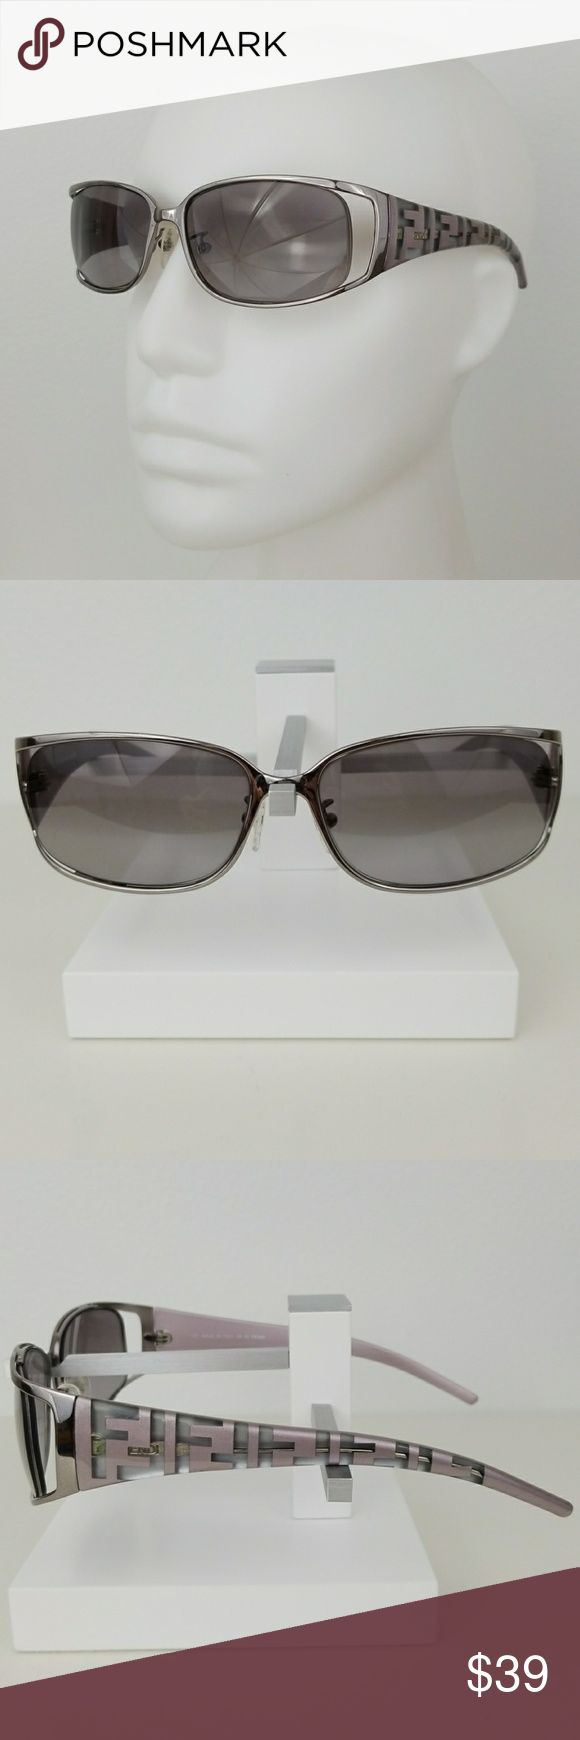 FENDI FS345 Eyeglass Frames Gunmetal grey face with floating lens. Polycarbonate side arms in metallic lavender with clear Fending logo initial print. Made in Italy. 58 16 130. These currently contain prescription lenses that must be changed to your personal RX lens and adjusted by your fave optician. Good used shape with minor surface scratching and minor blemishes. Some tarnishing of the wire that is encased in the side arm polycarbonate (visible green patina). Price reflects wear. These…